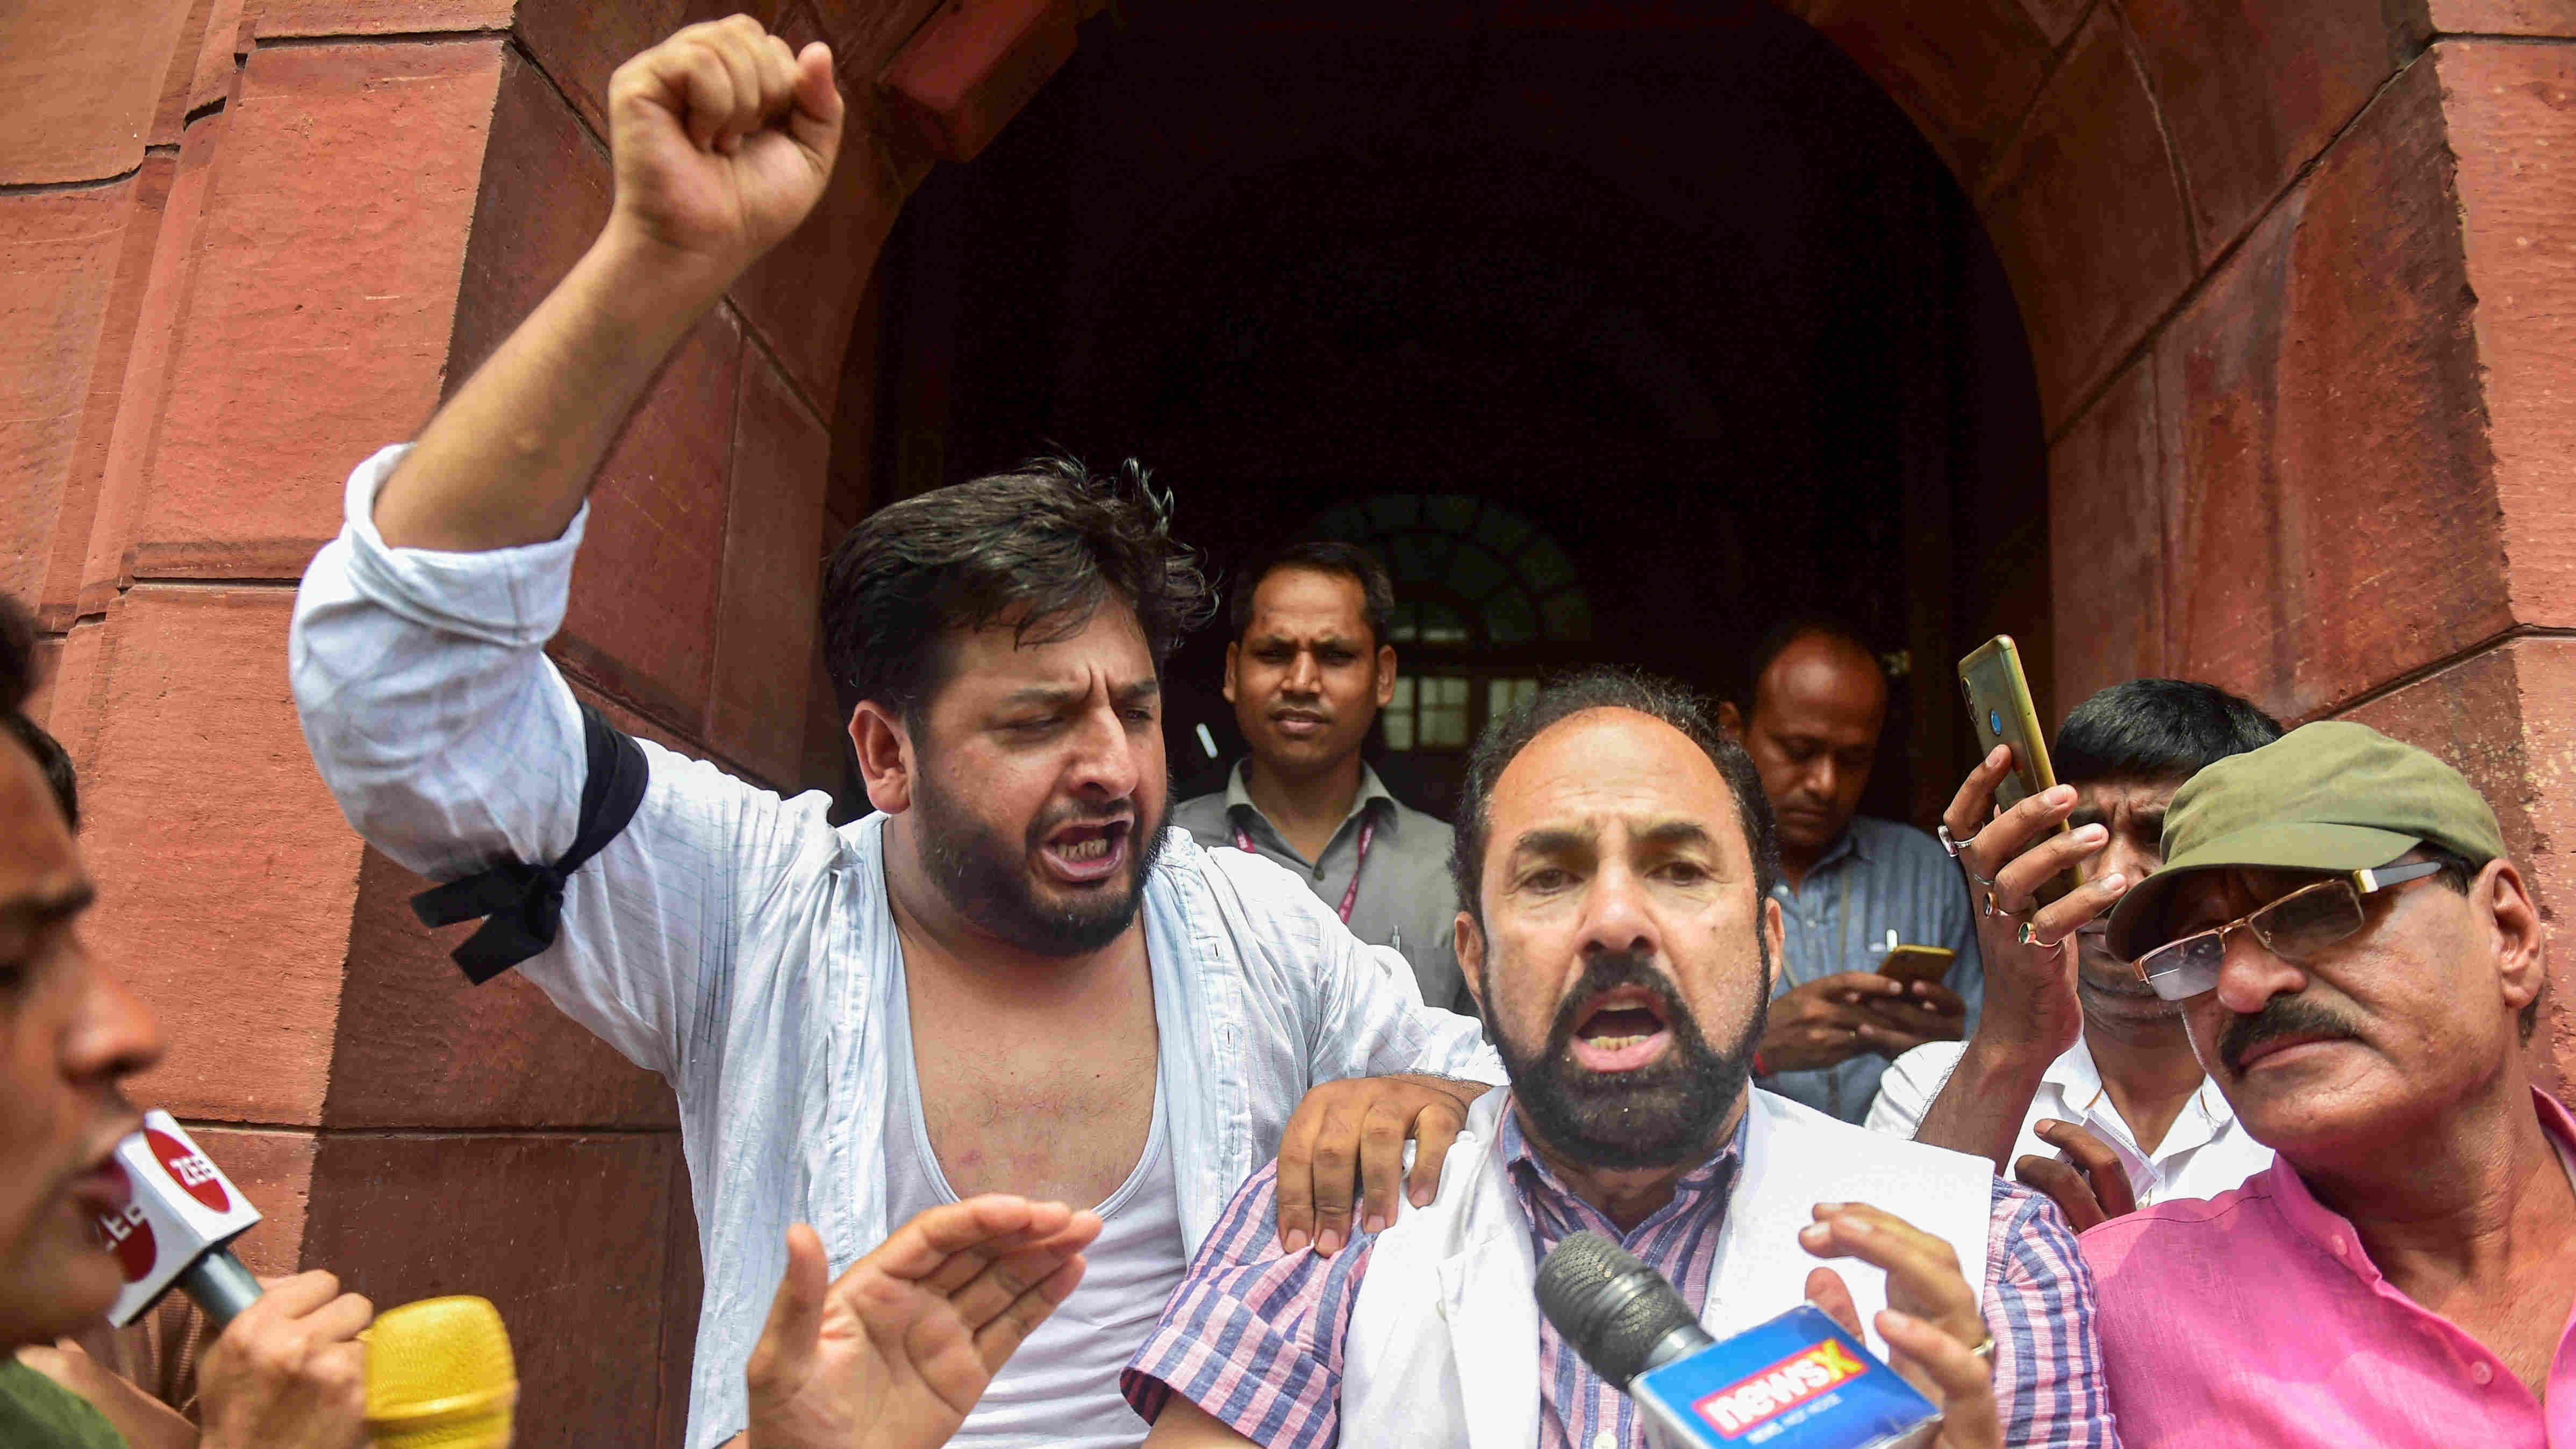 PDP MPs from Jammu and Kashmir, Fayaz Ahmad Mir and Nazir Ahmad Laway, shout slogans during a protest outside Parliament on August 5.